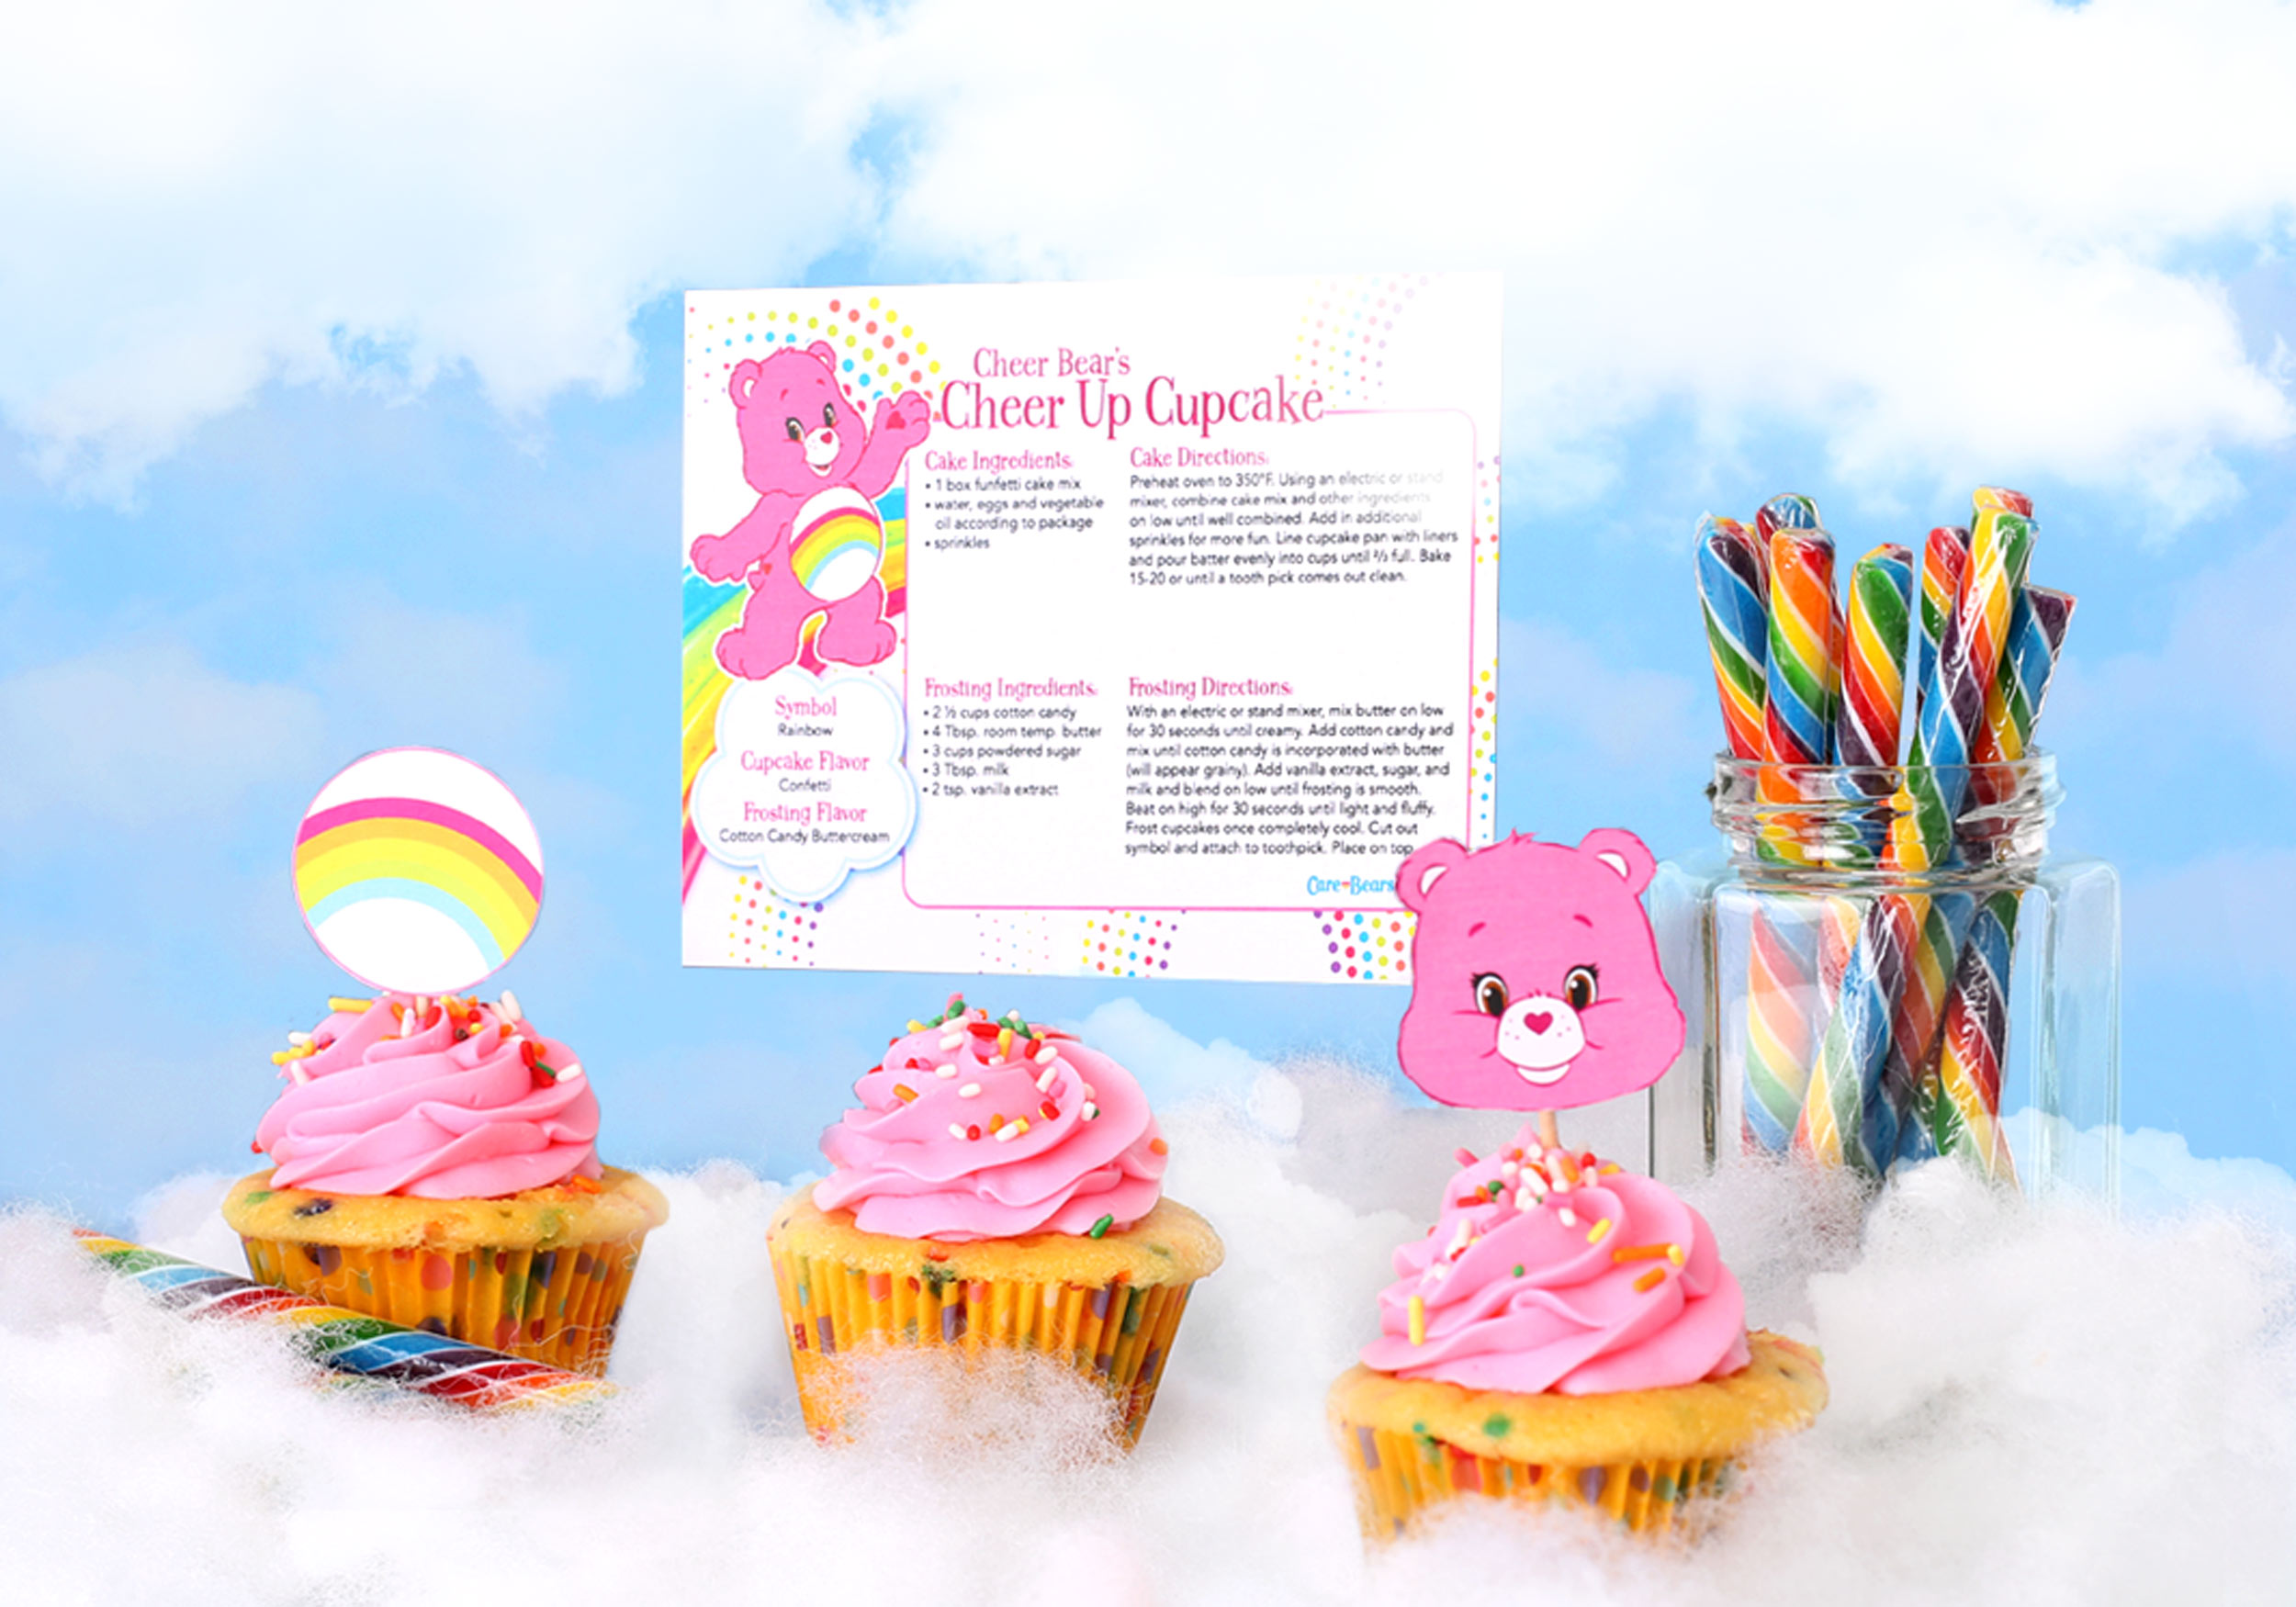 Cheer Bear cupcake recipe